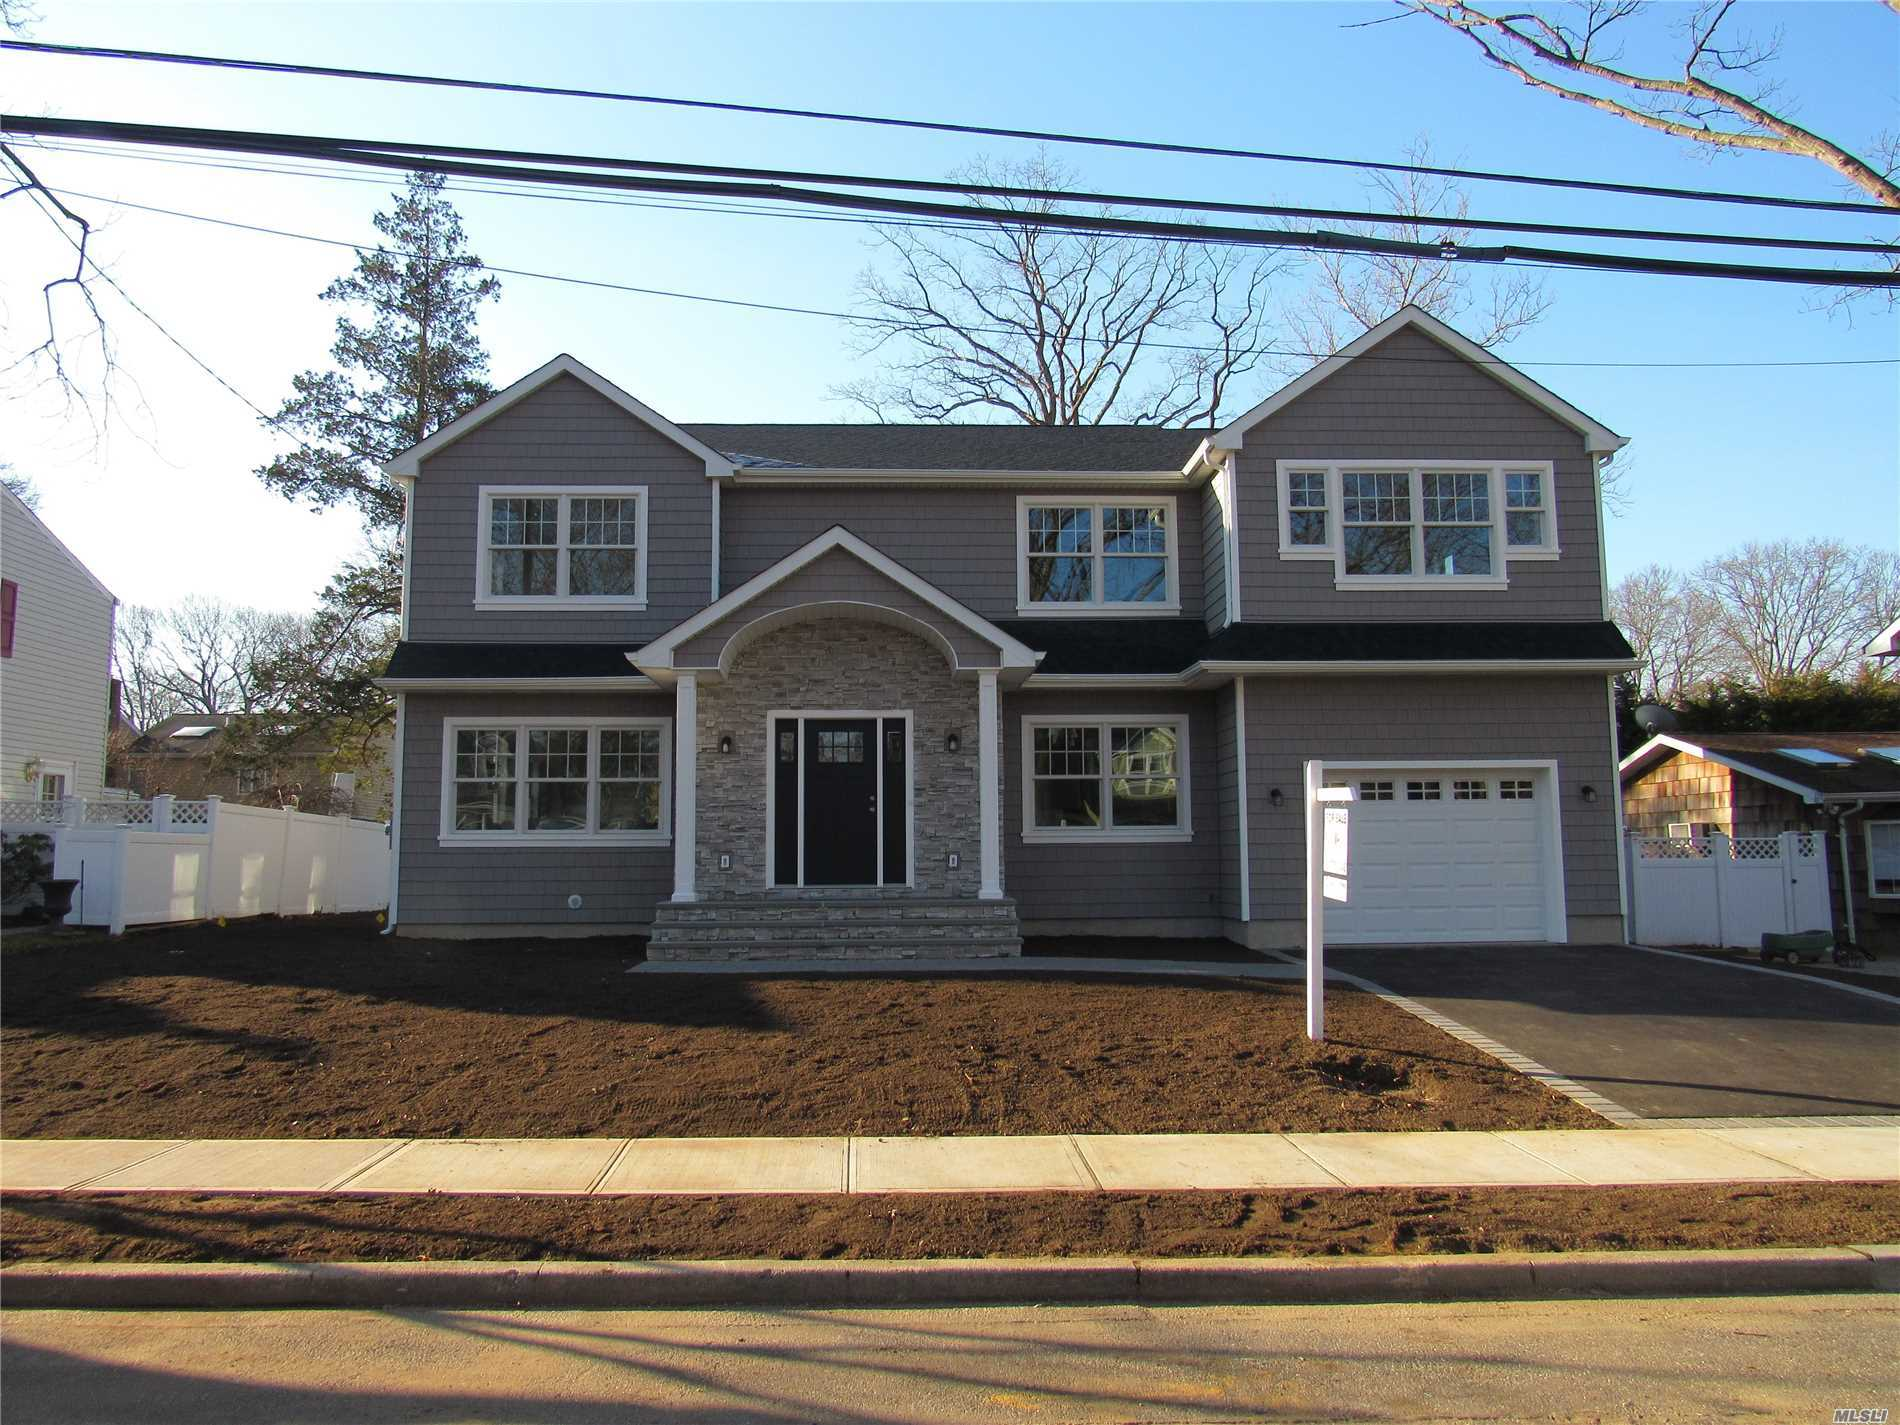 Prime Massapequa Woods Mid Block Location, New Construction Custom Colonial Features Open Layout, Living Room With Gas Fireplace, Top Of The Line Custom Kitchen, Formal Dining Room, Master Suite With Spa Bath And Large Walk In Closet, 4 Additional Spacious Bedrooms, Large Full Bathroom, Attic Storage, 2 Zone Central Air Conditioning, Anderson Windows, Call Today To Customize And Pick Your Finishes Including Floors & Paint Colors.